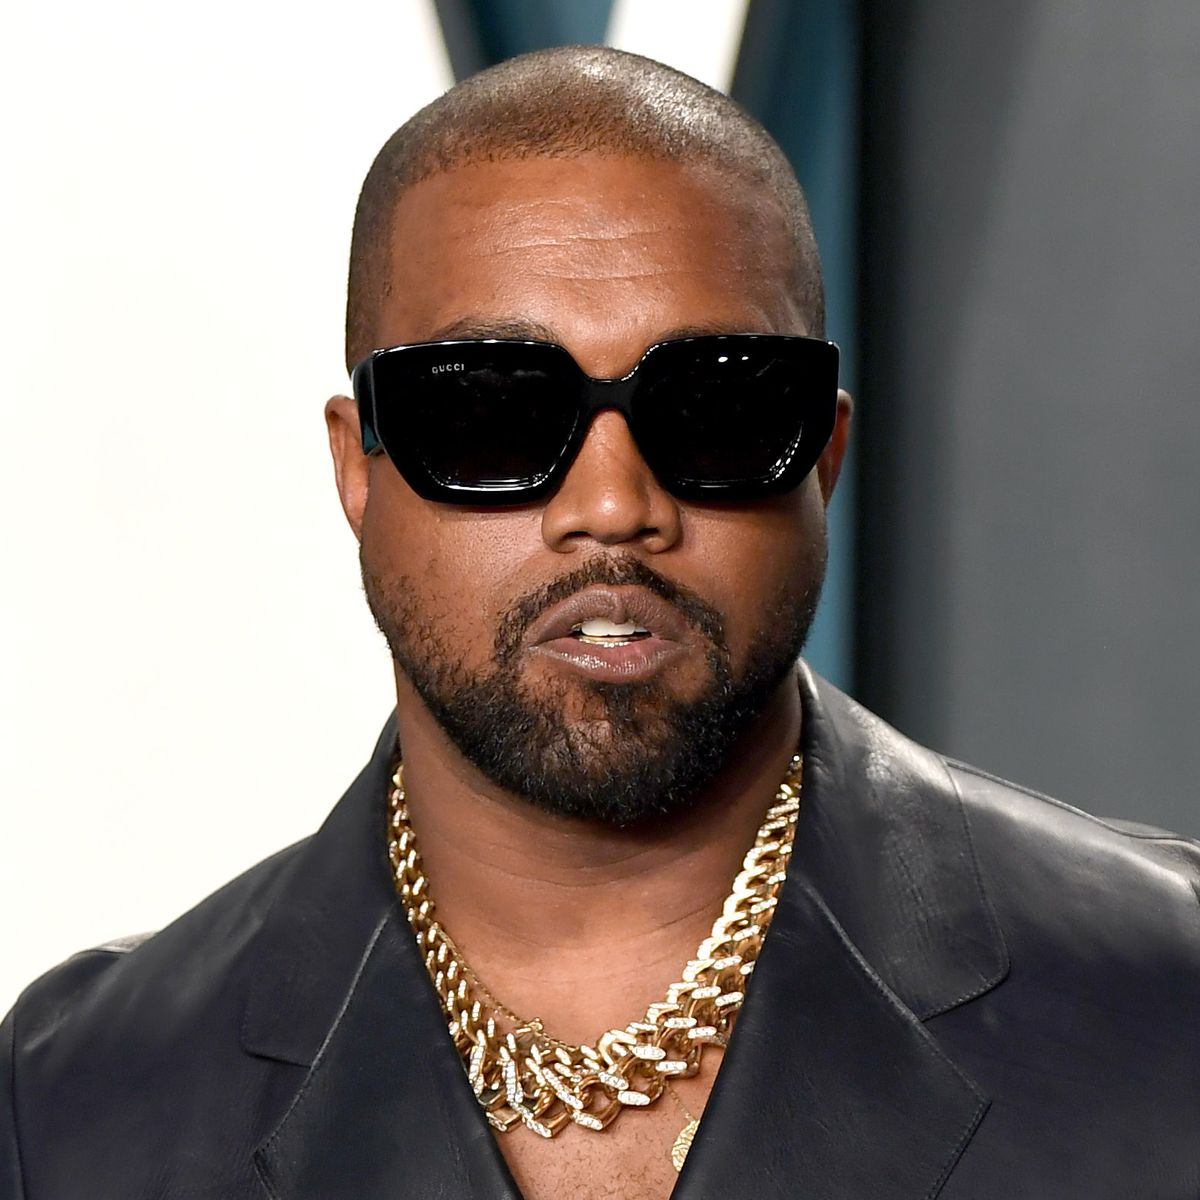 Kanye West buys a Malibu home – See how much it costs